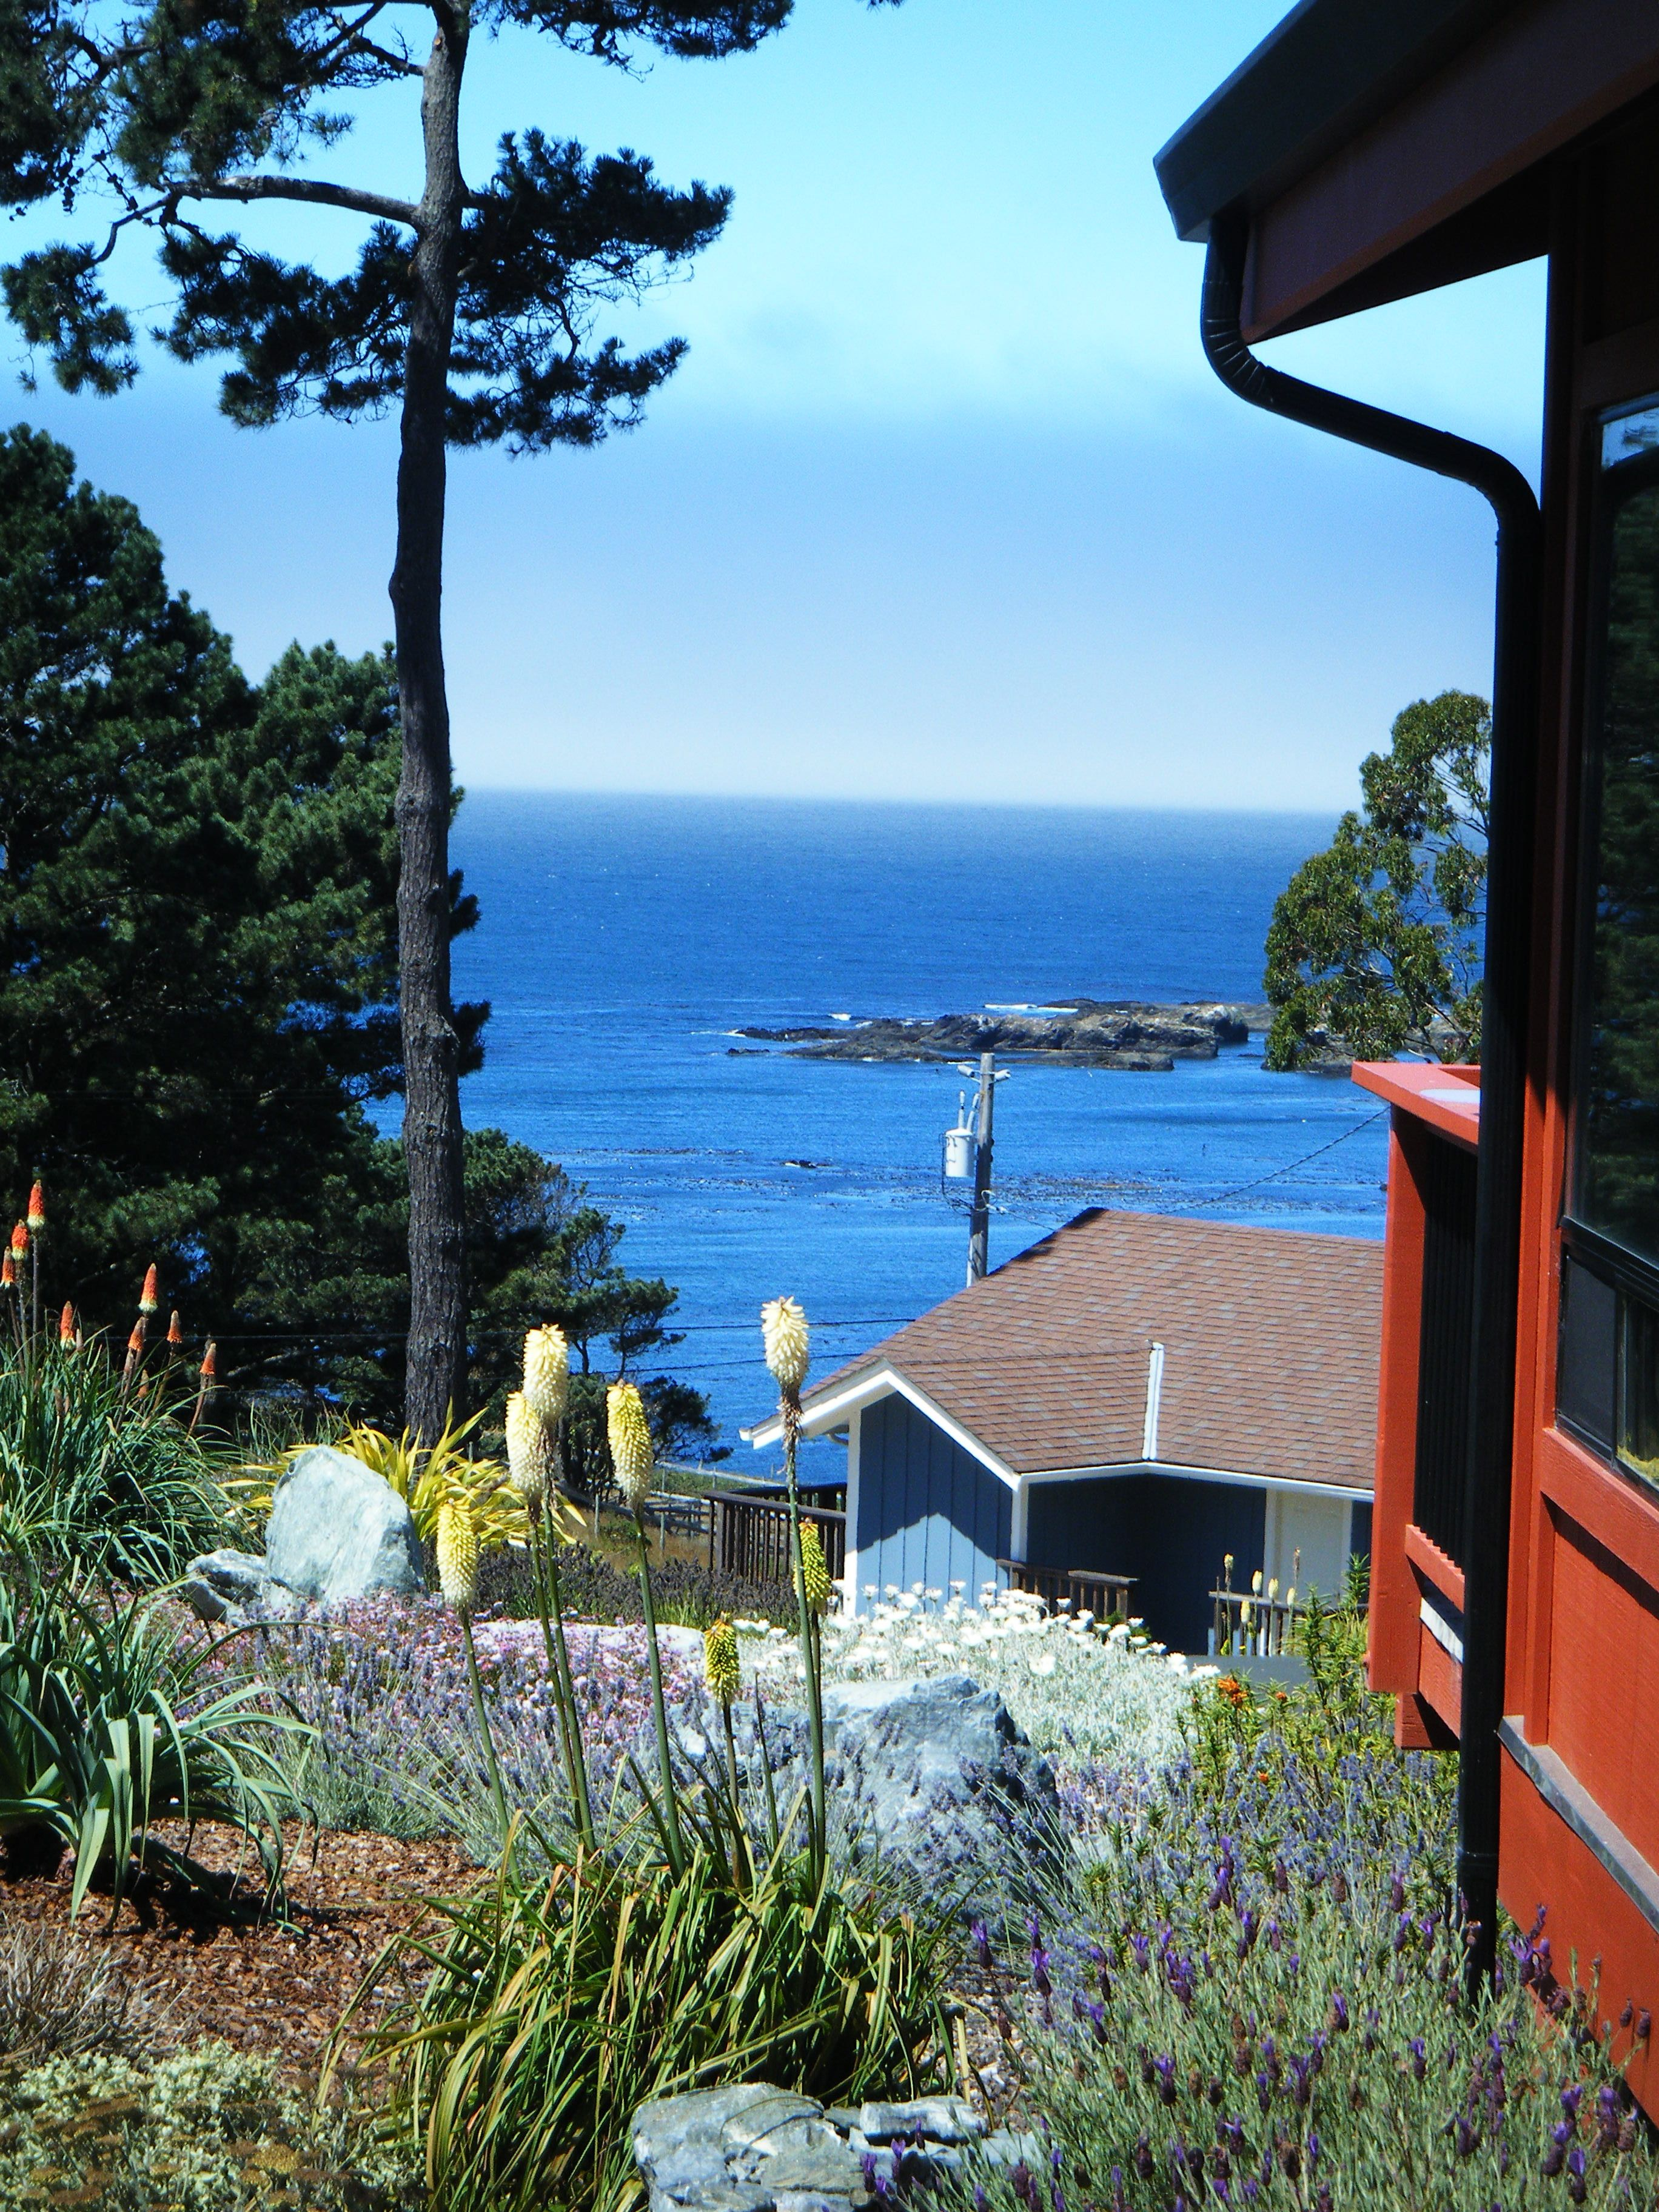 Mendocino, CA - am so happy to live here, every single day is a blessing.